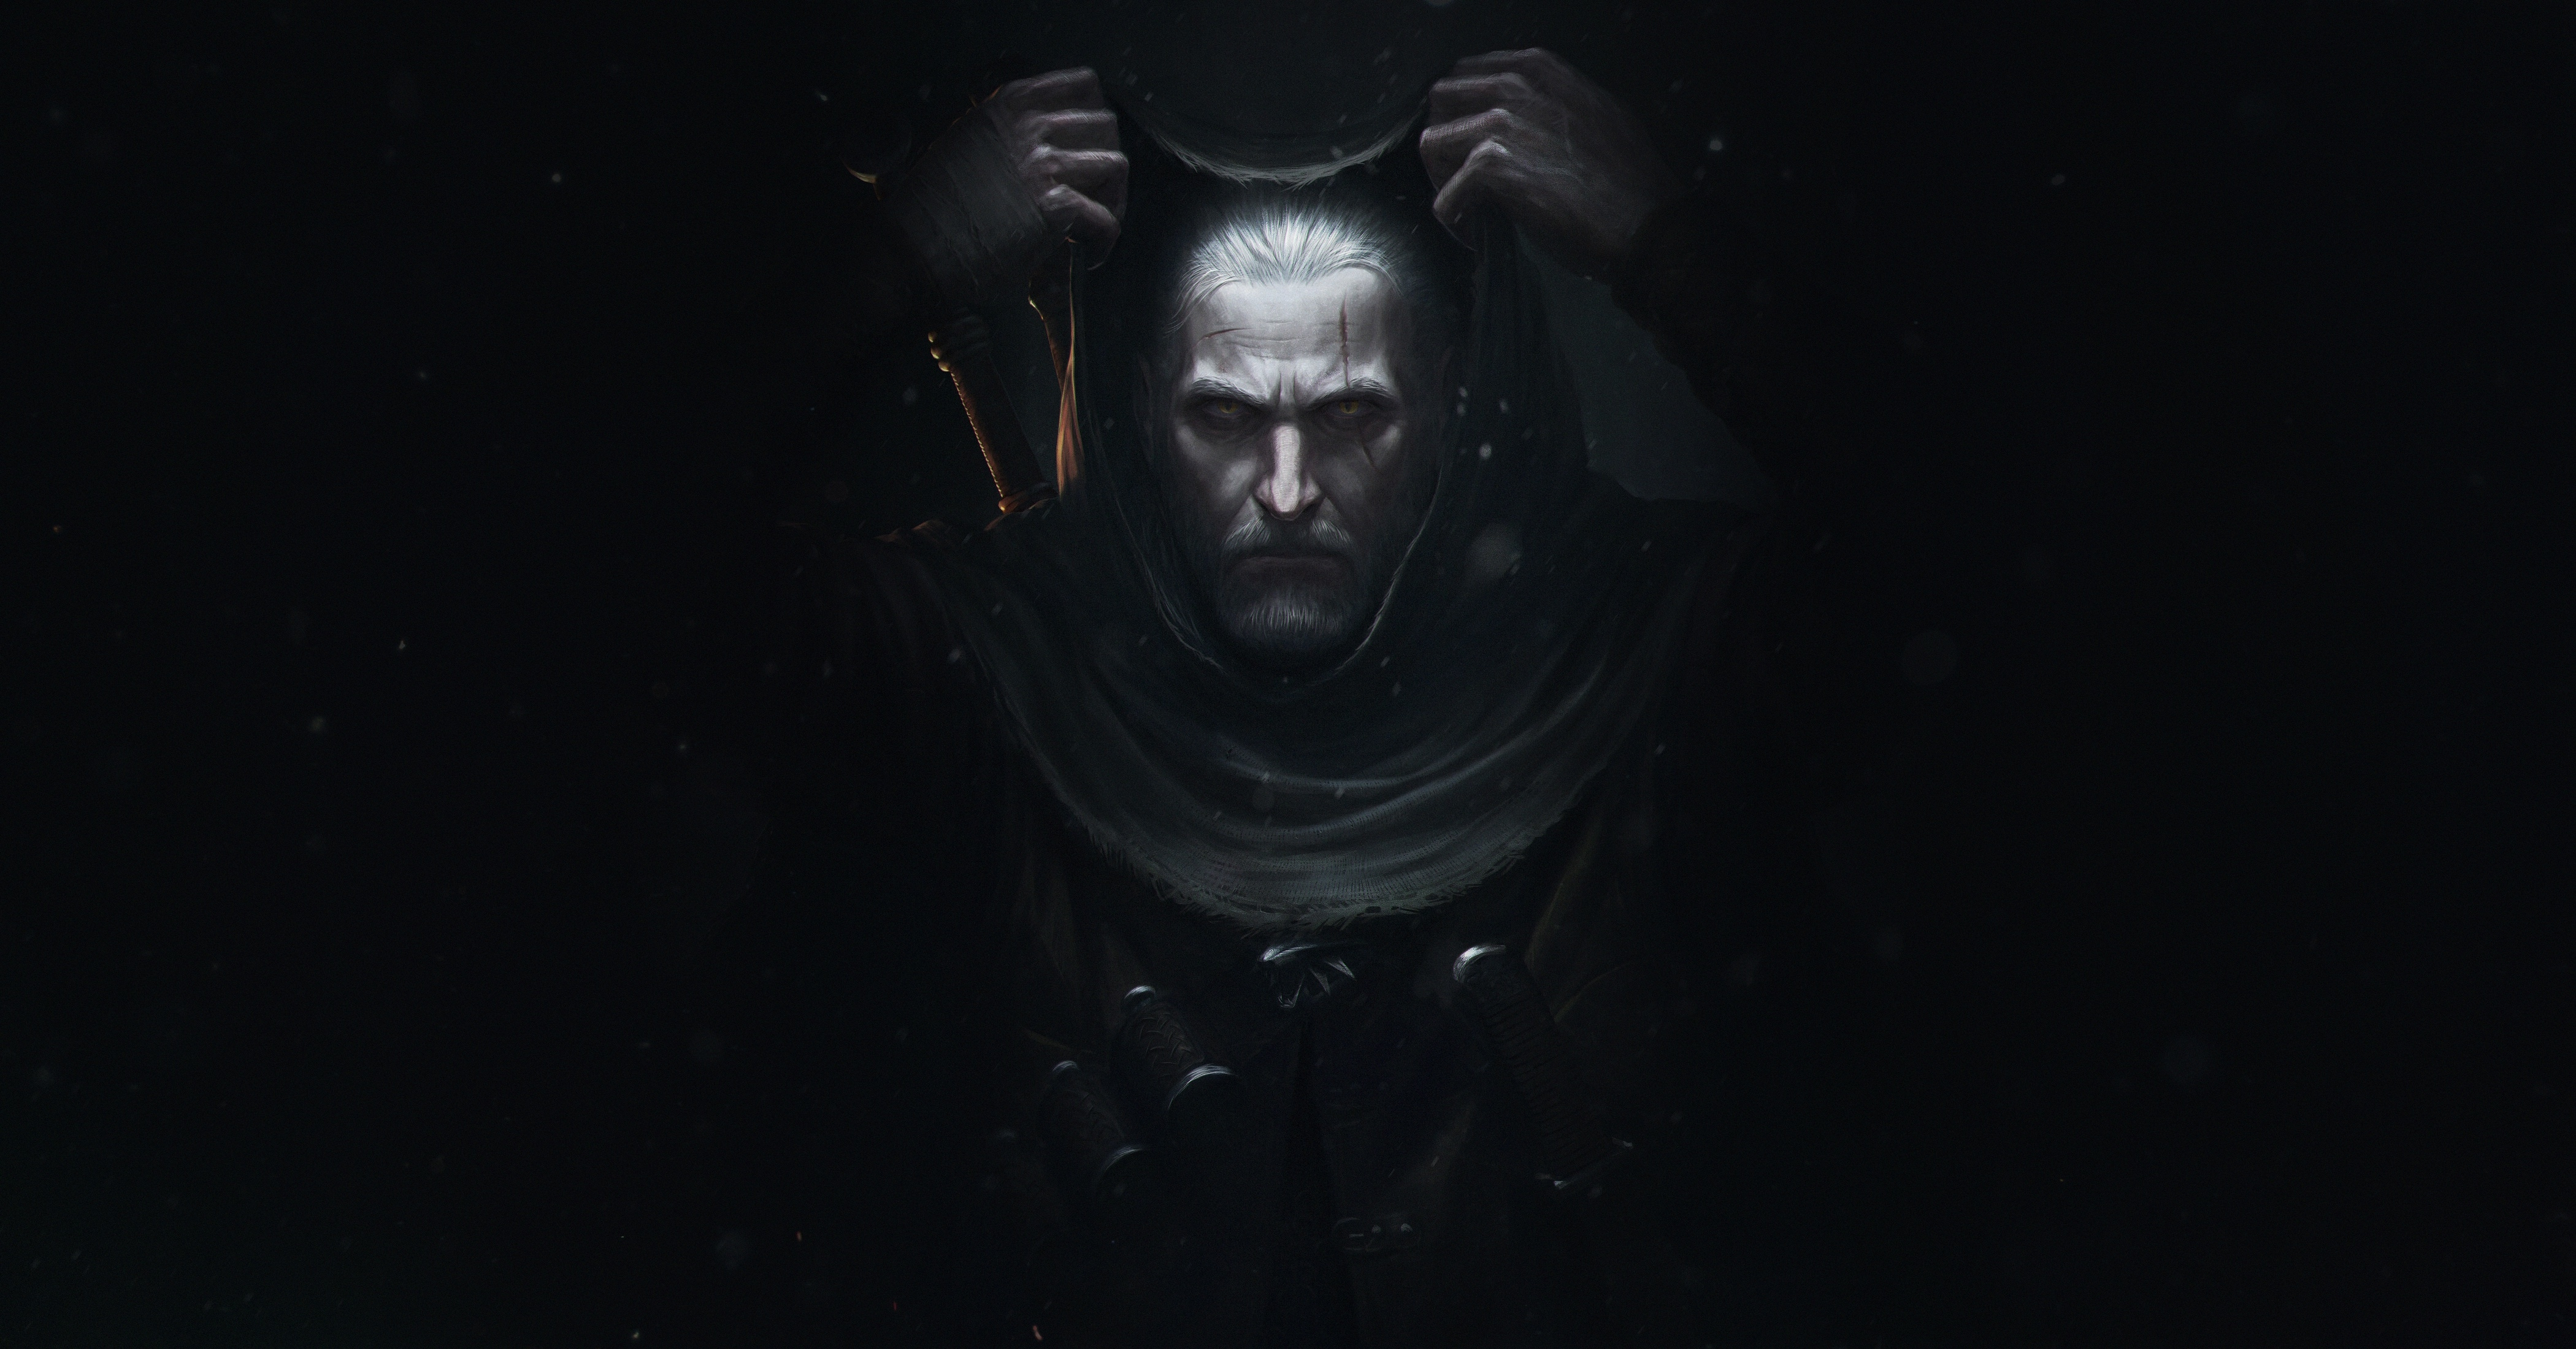 The Witcher 3 Wild Hunt Poster Wallpaper Hd Games 4k Wallpapers Images Photos And Background